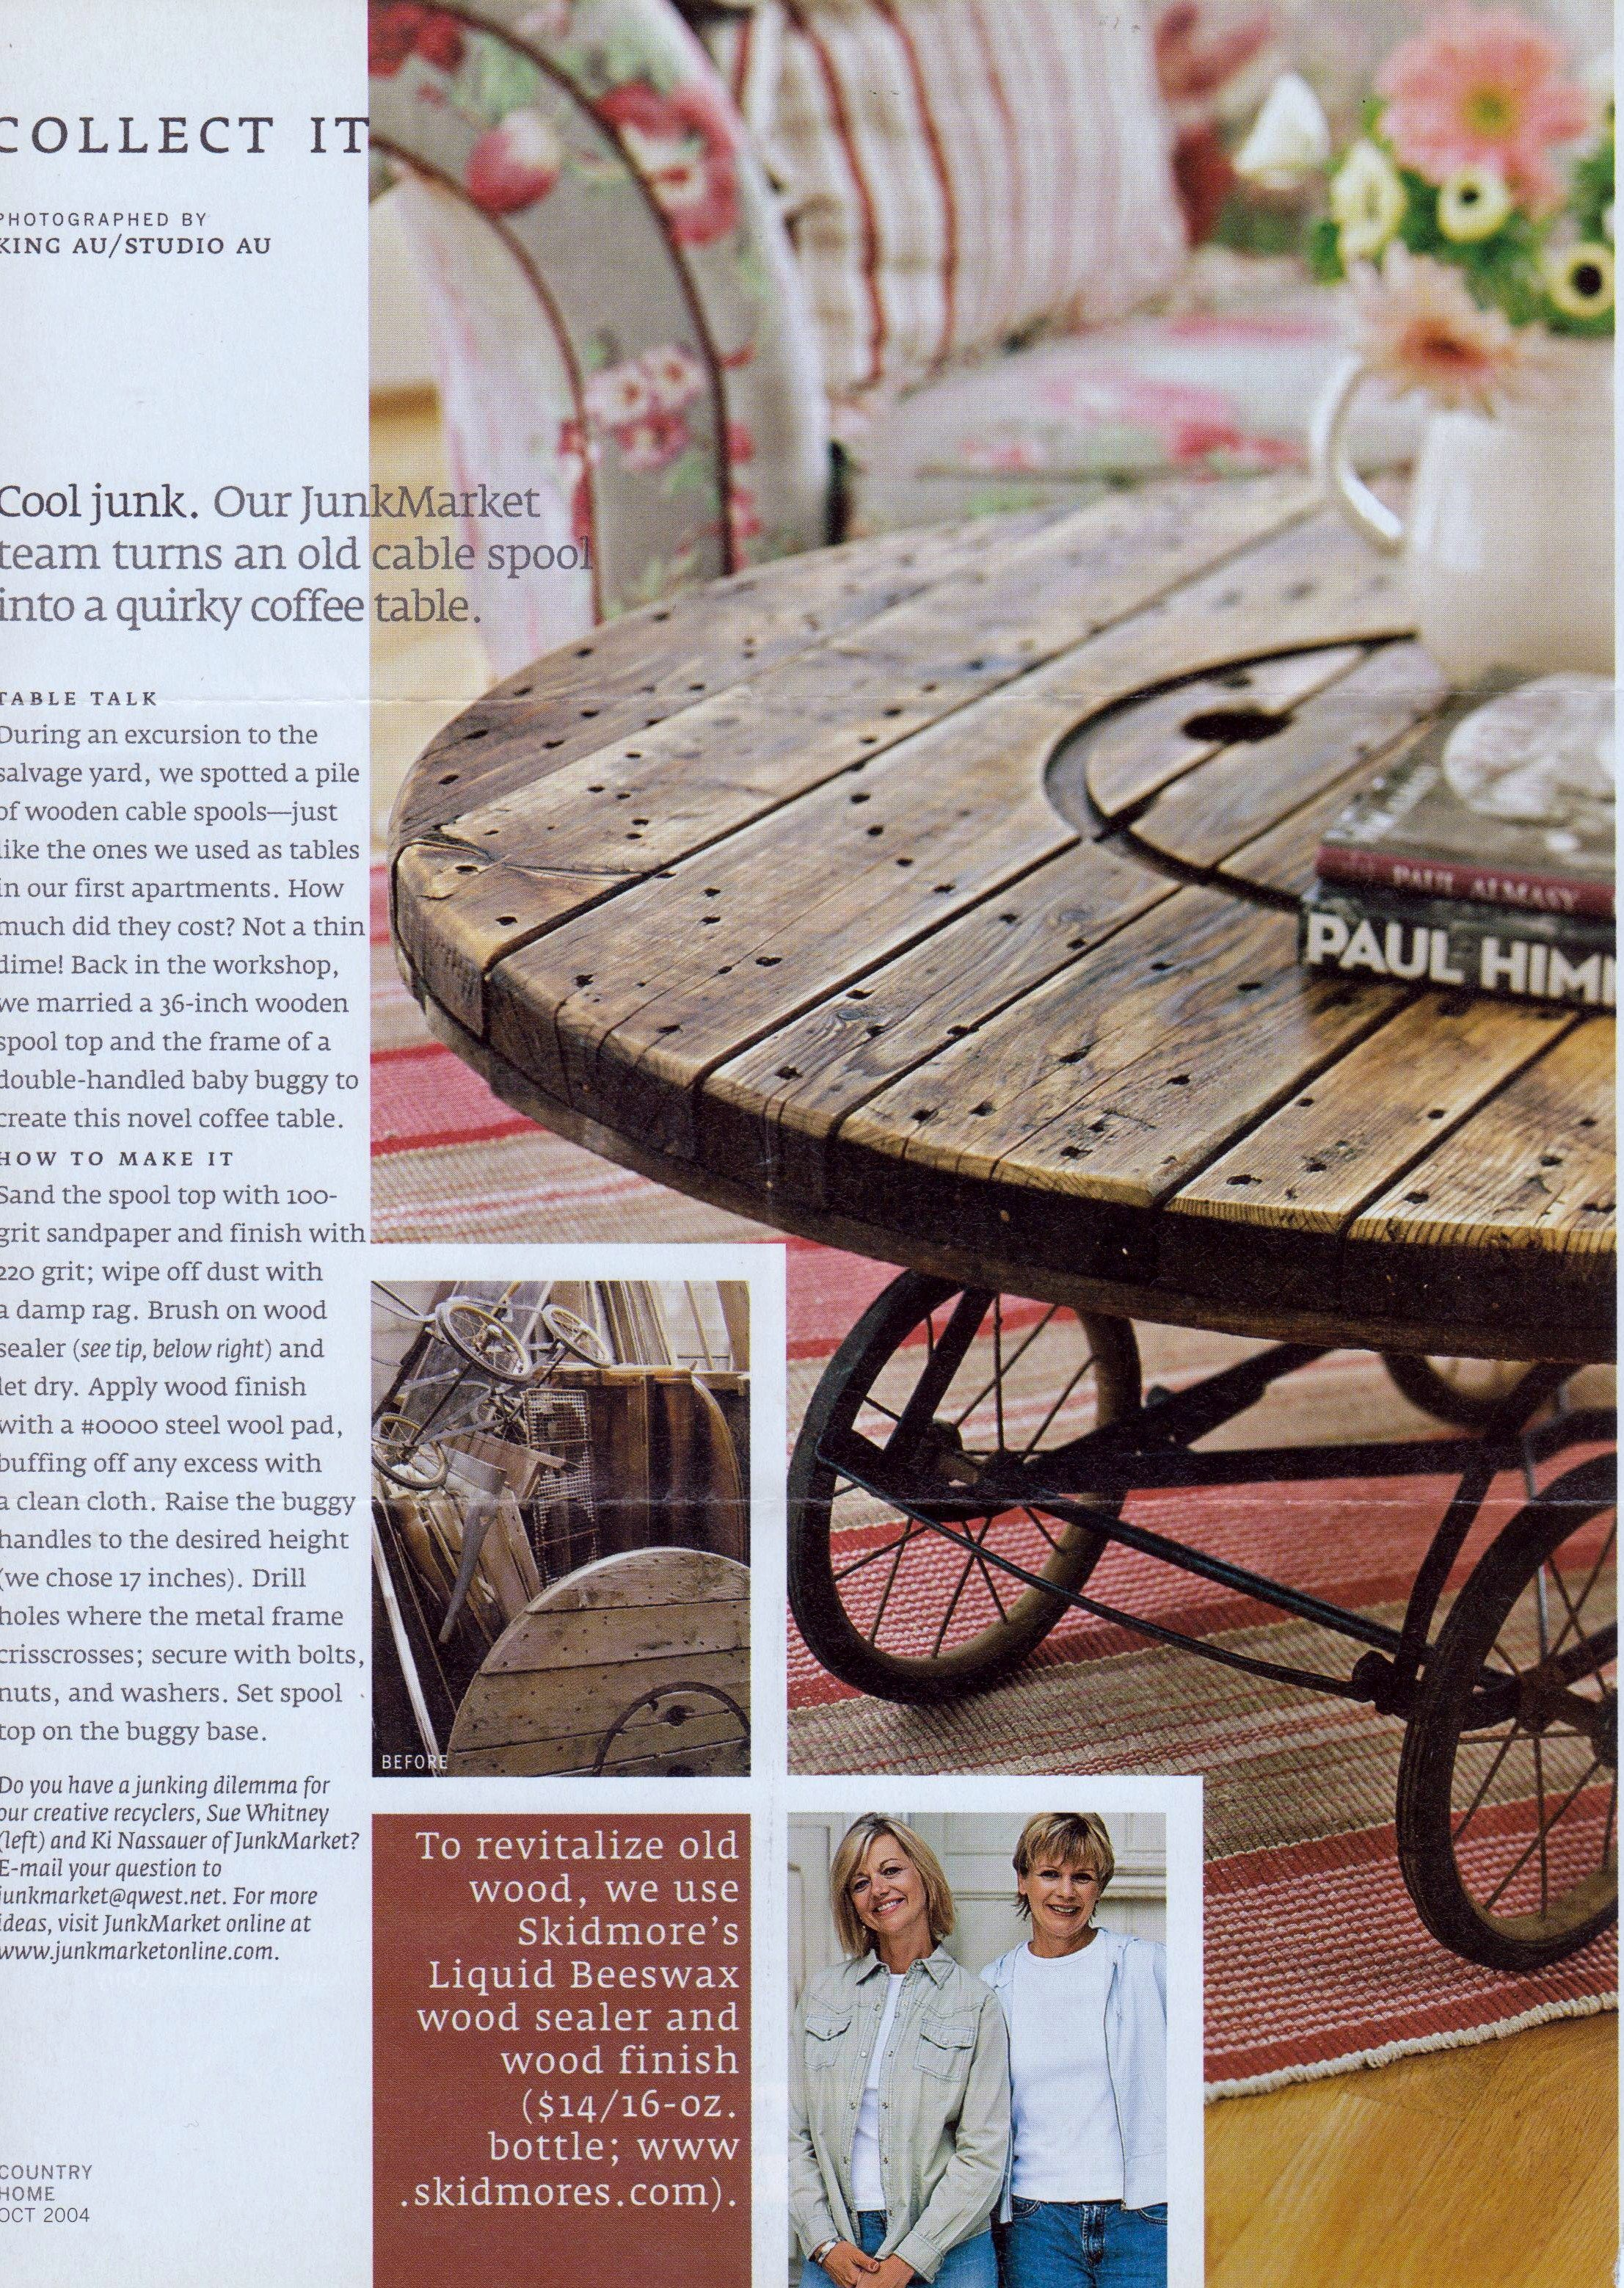 Wooden Cable Spool becomes coffee table - DIY | Wooden Cable Spools ...